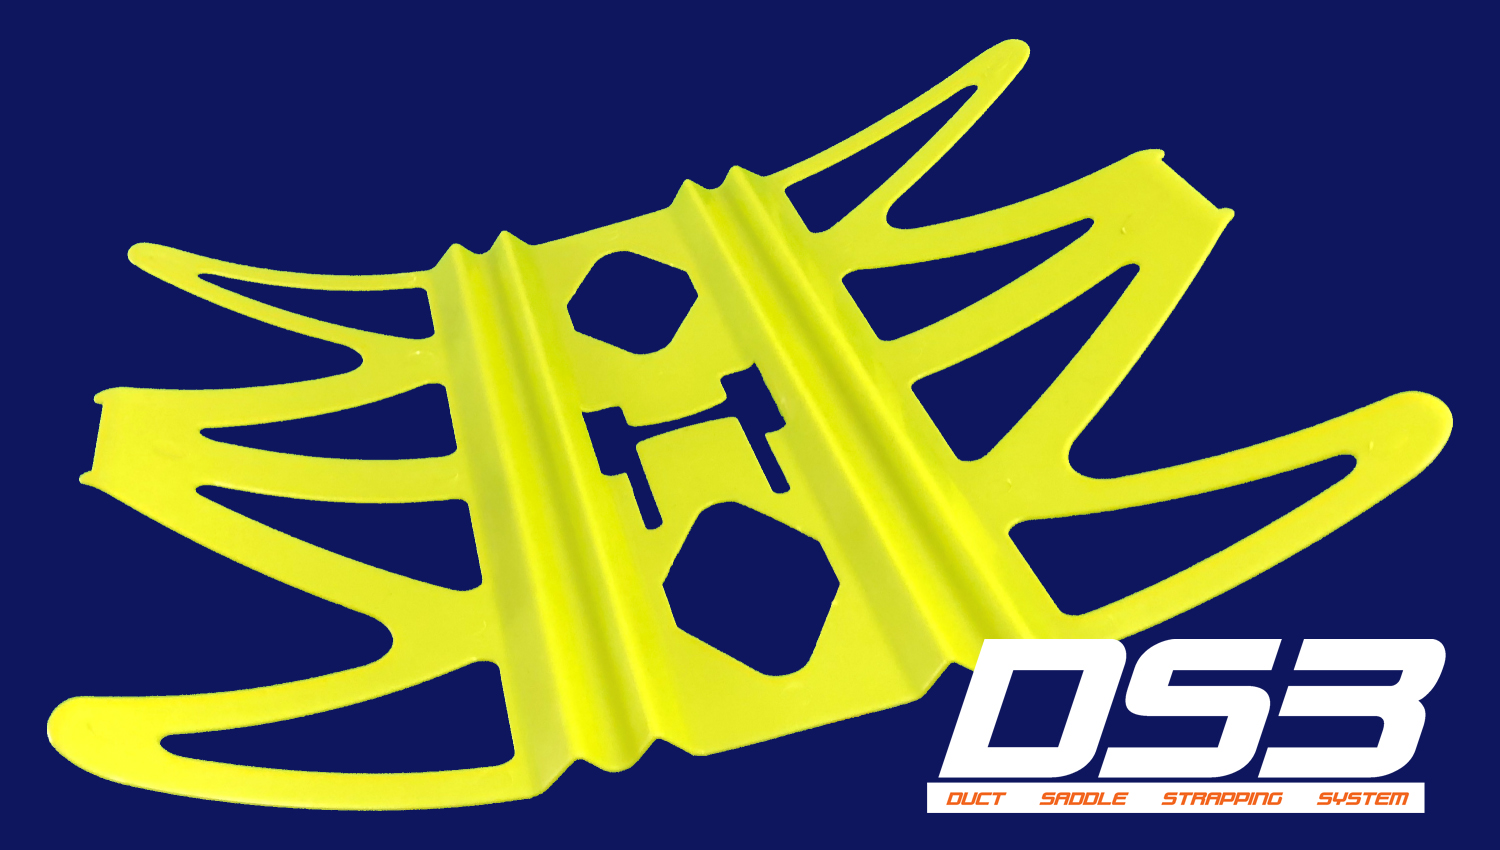 http://bpi.org/sites/default/files/SaddleBluewithLogo.jpg